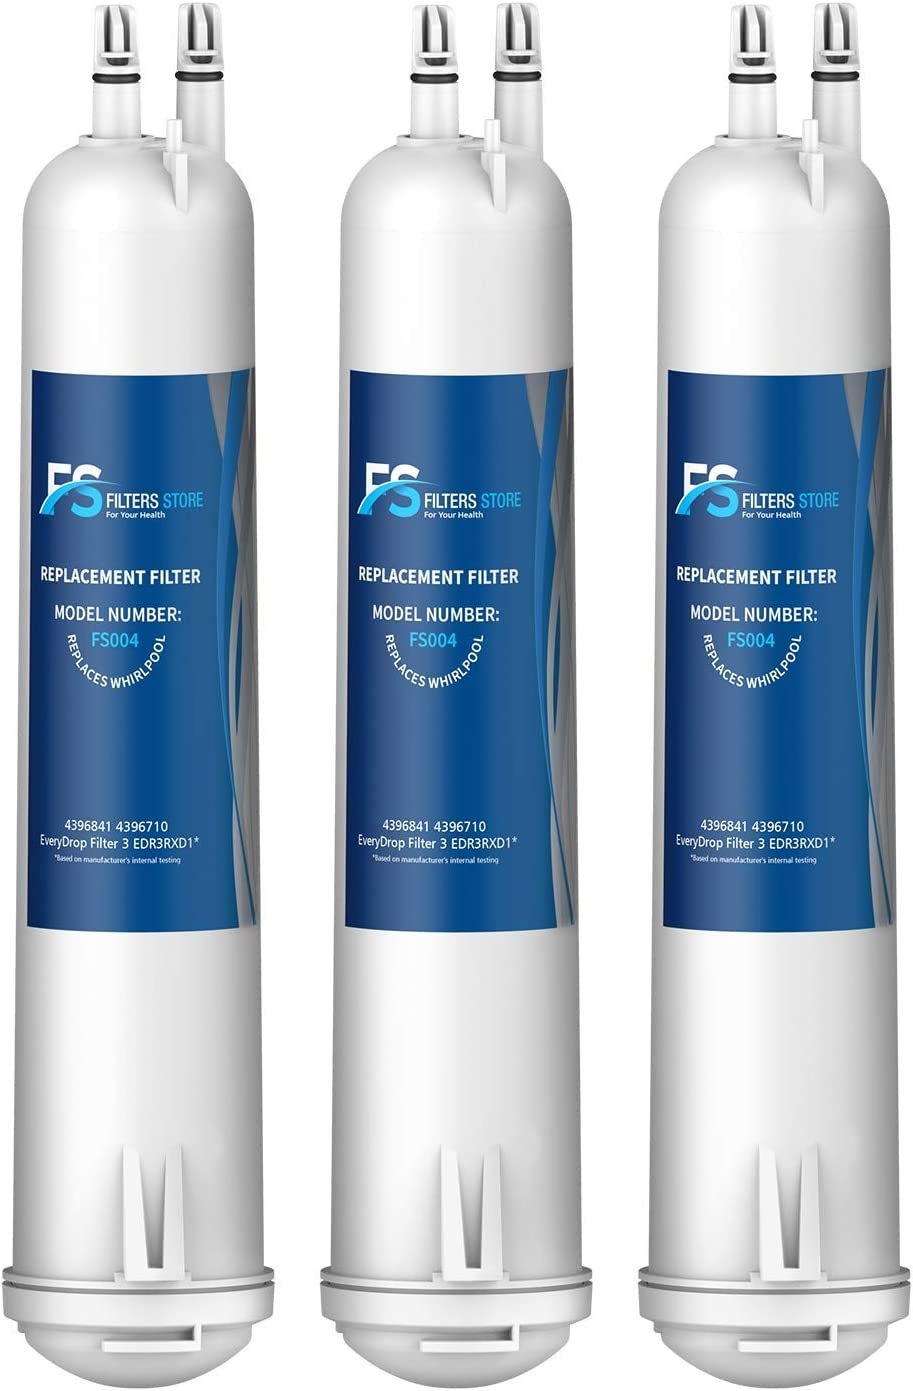 4396841 EDR3RXD1 Water Filter Replacement